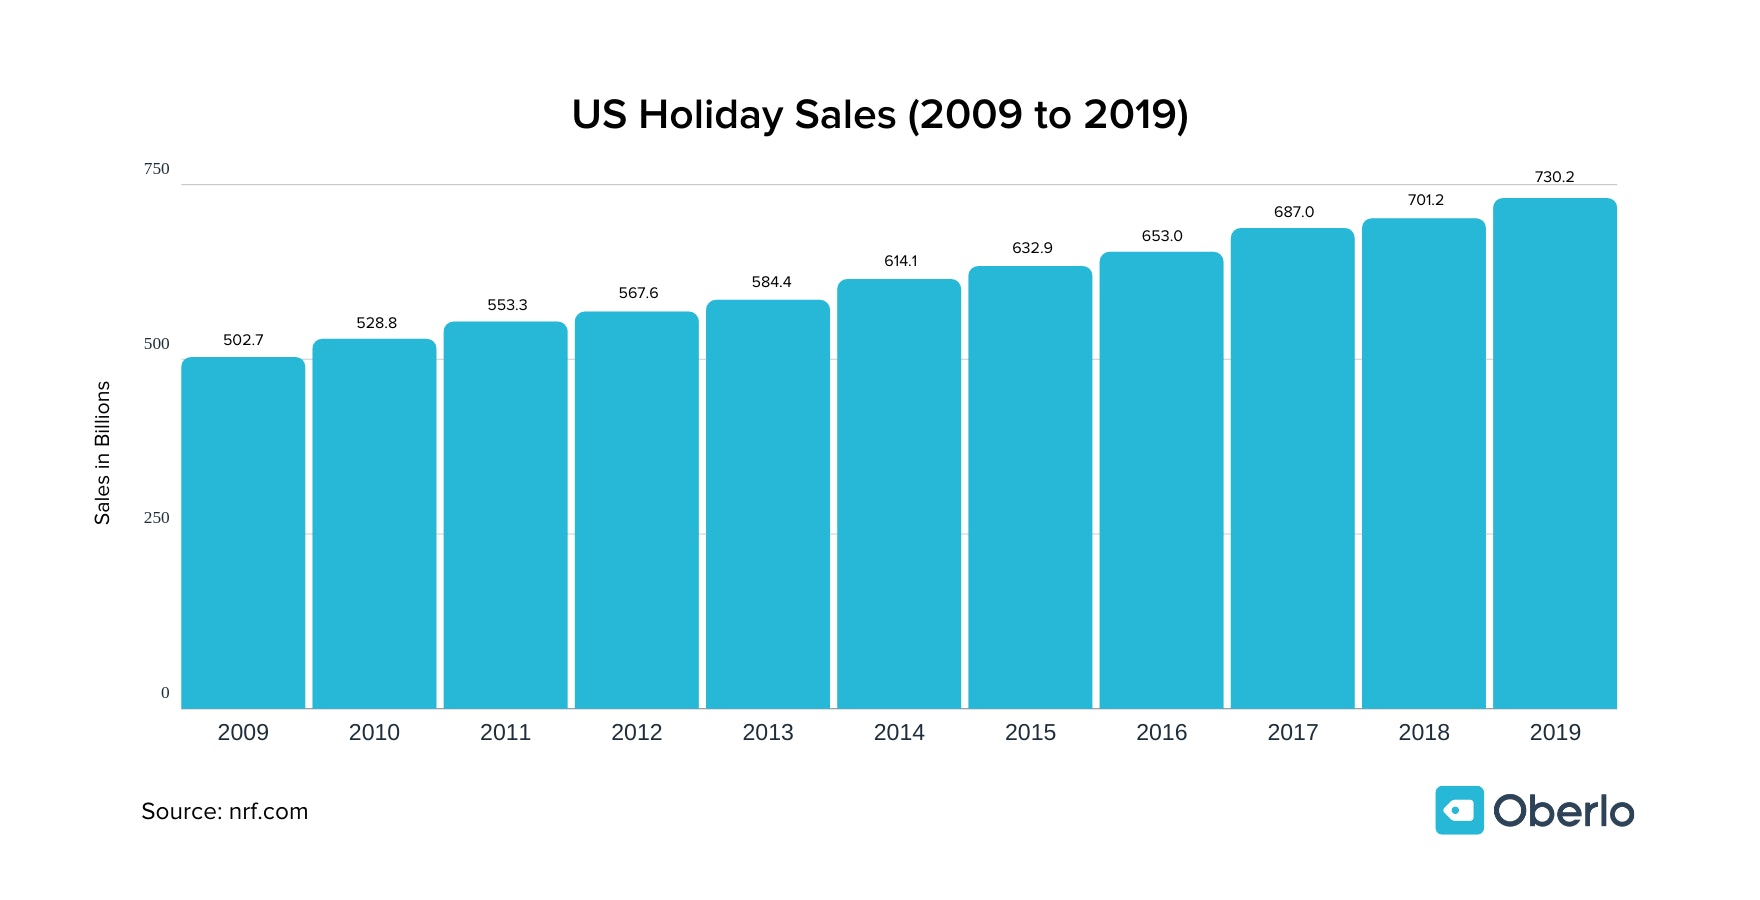 US holiday sales 2009 to 2019 chart